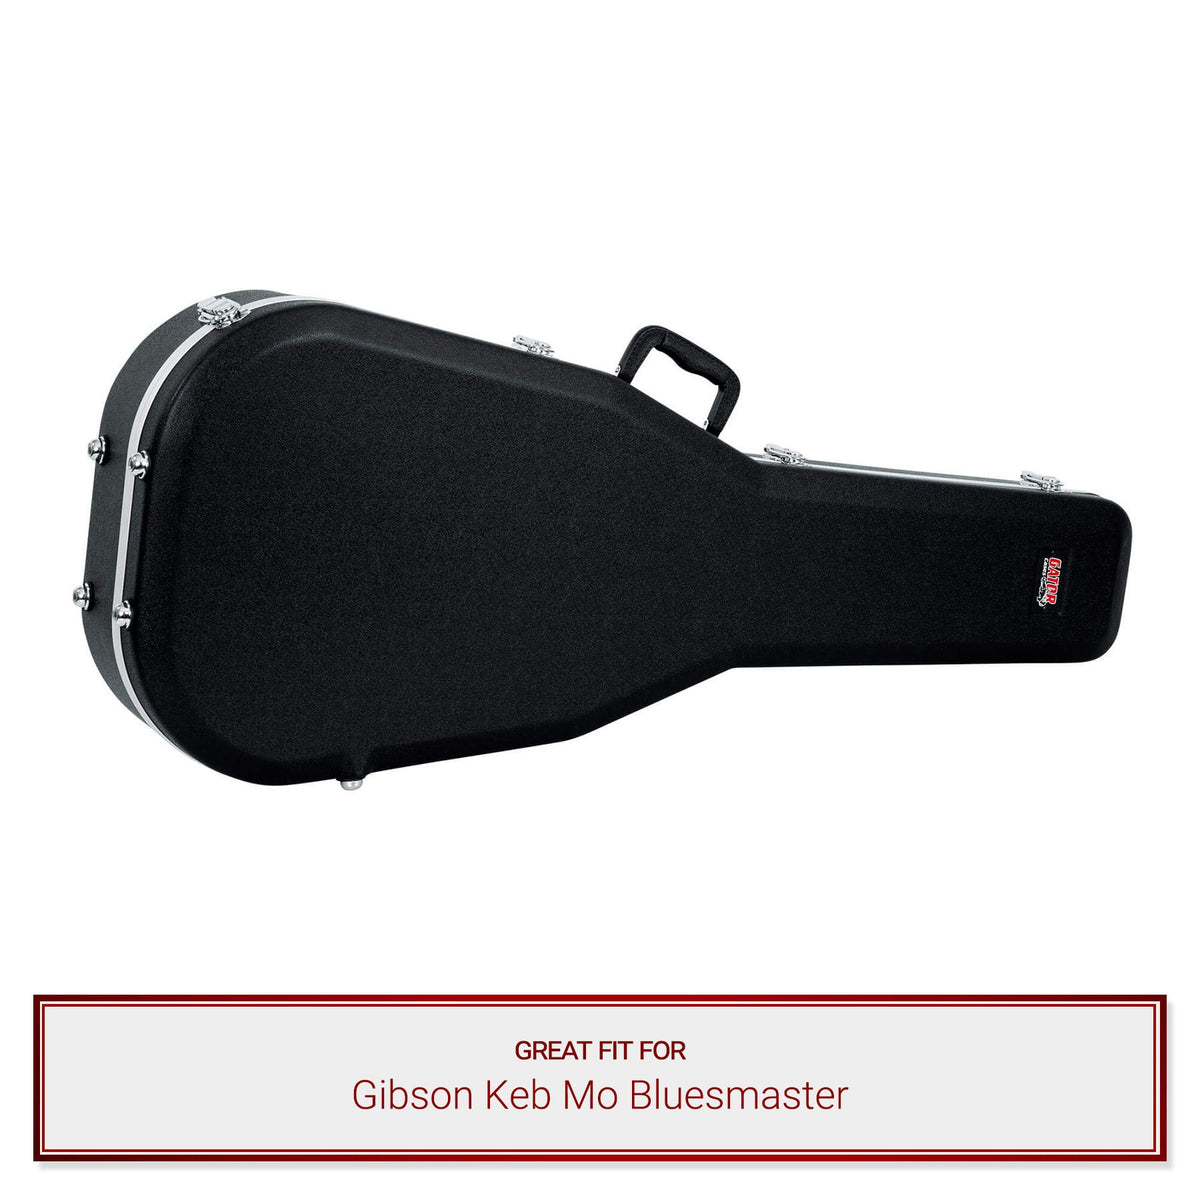 Gator Classical Guitar Case fits Gibson Keb Mo Bluesmaster